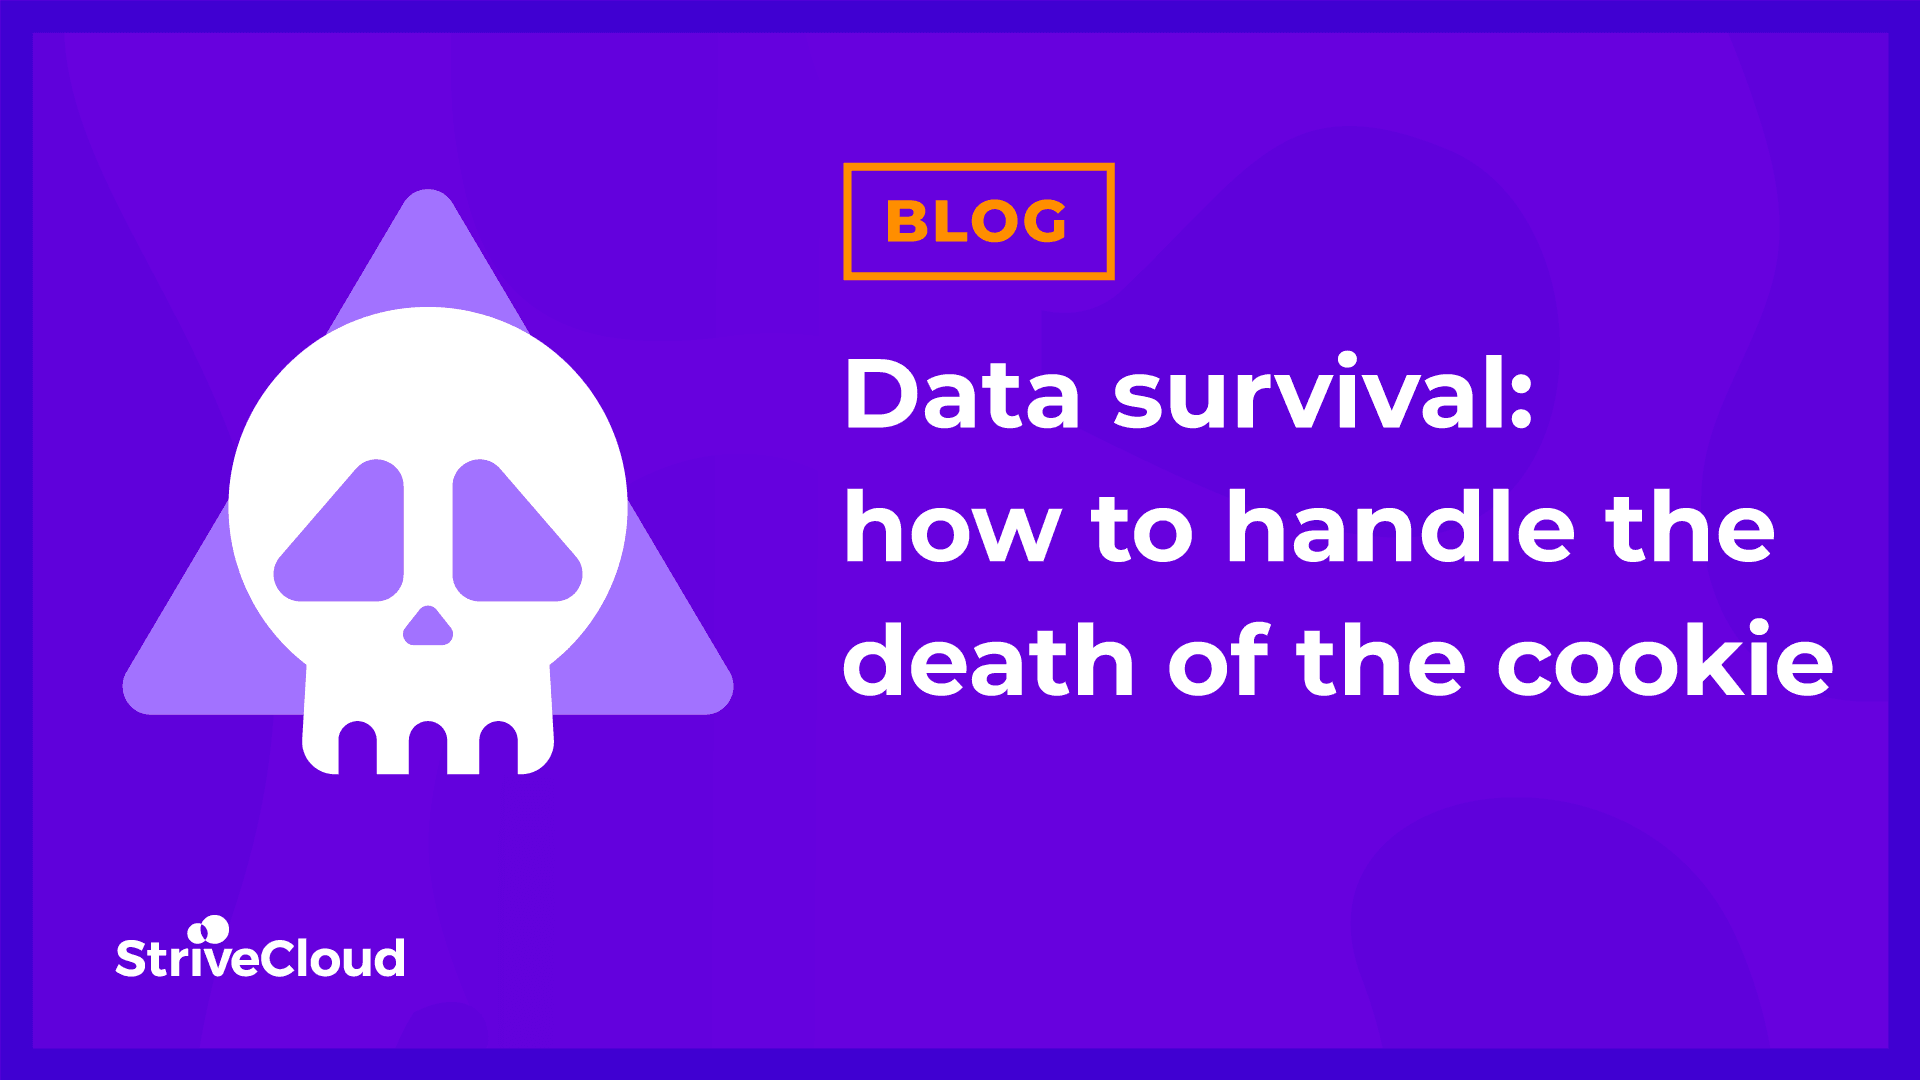 Data survival: how to handle the death of the cookie